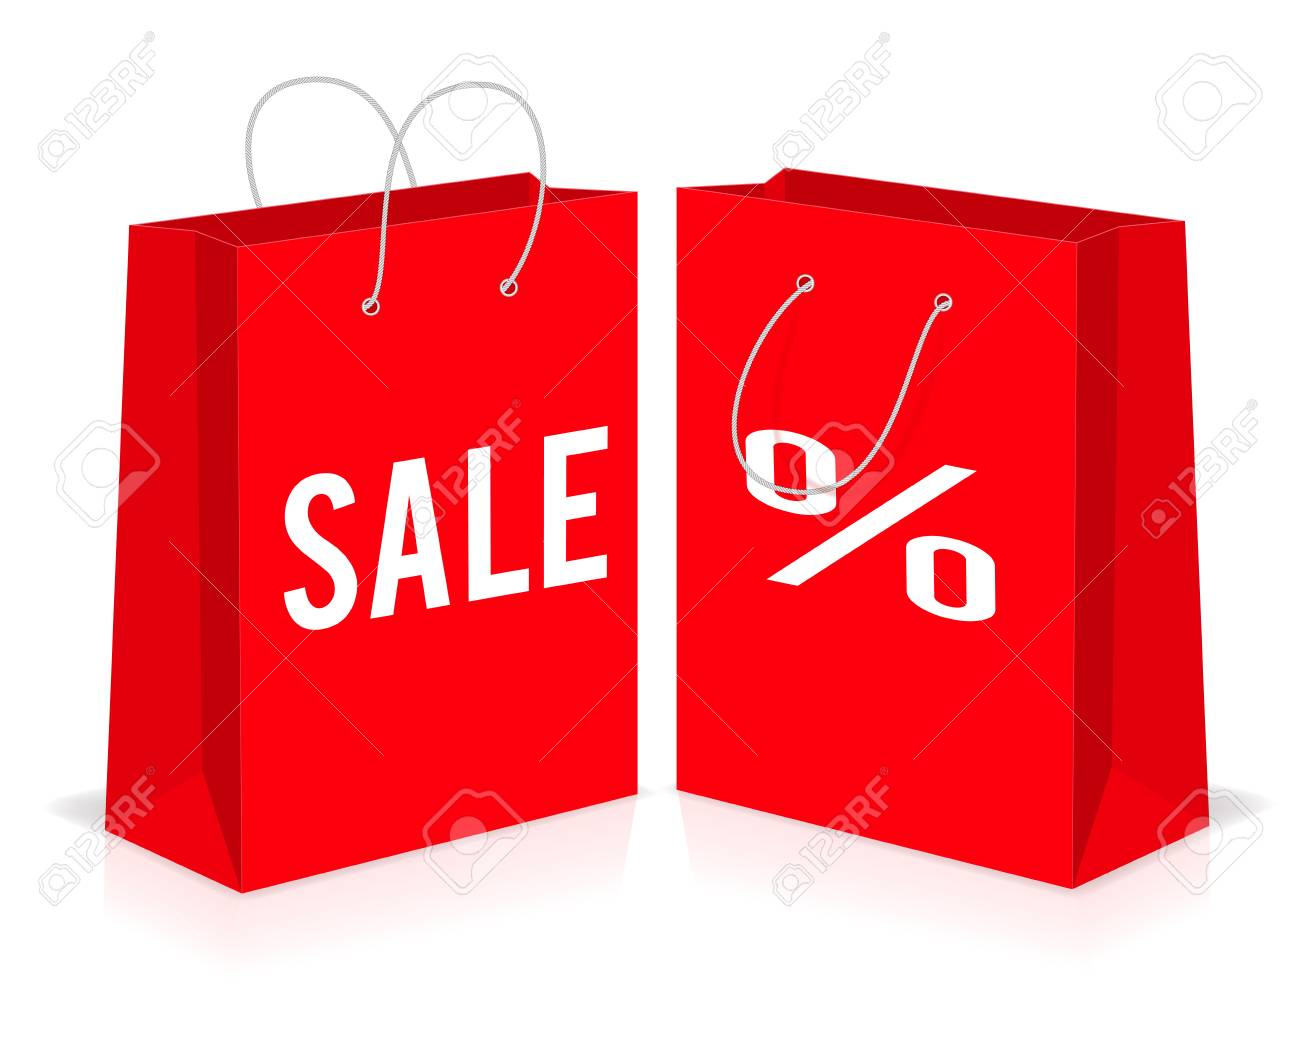 dae94af06007 Red shopping paper empty bags with percent and sale signs. Vector  illustration. Stock Vector